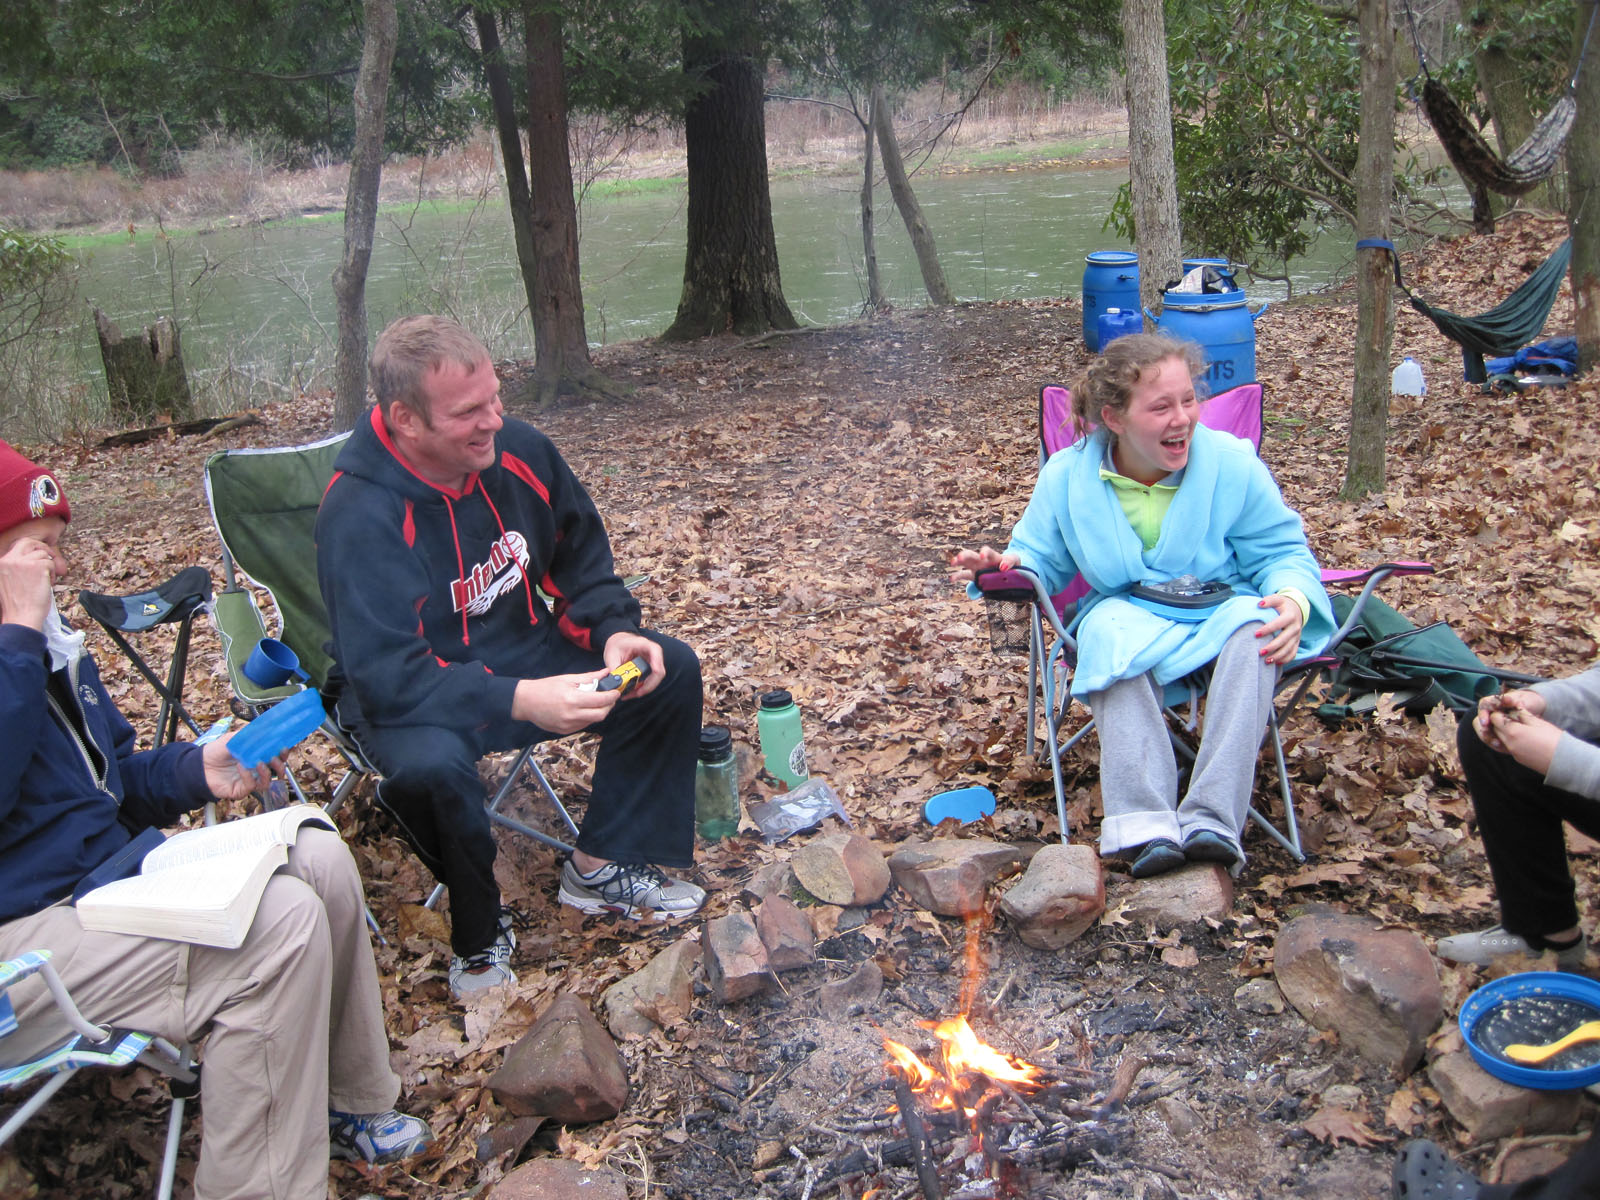 Lots of laughter around the campfire.